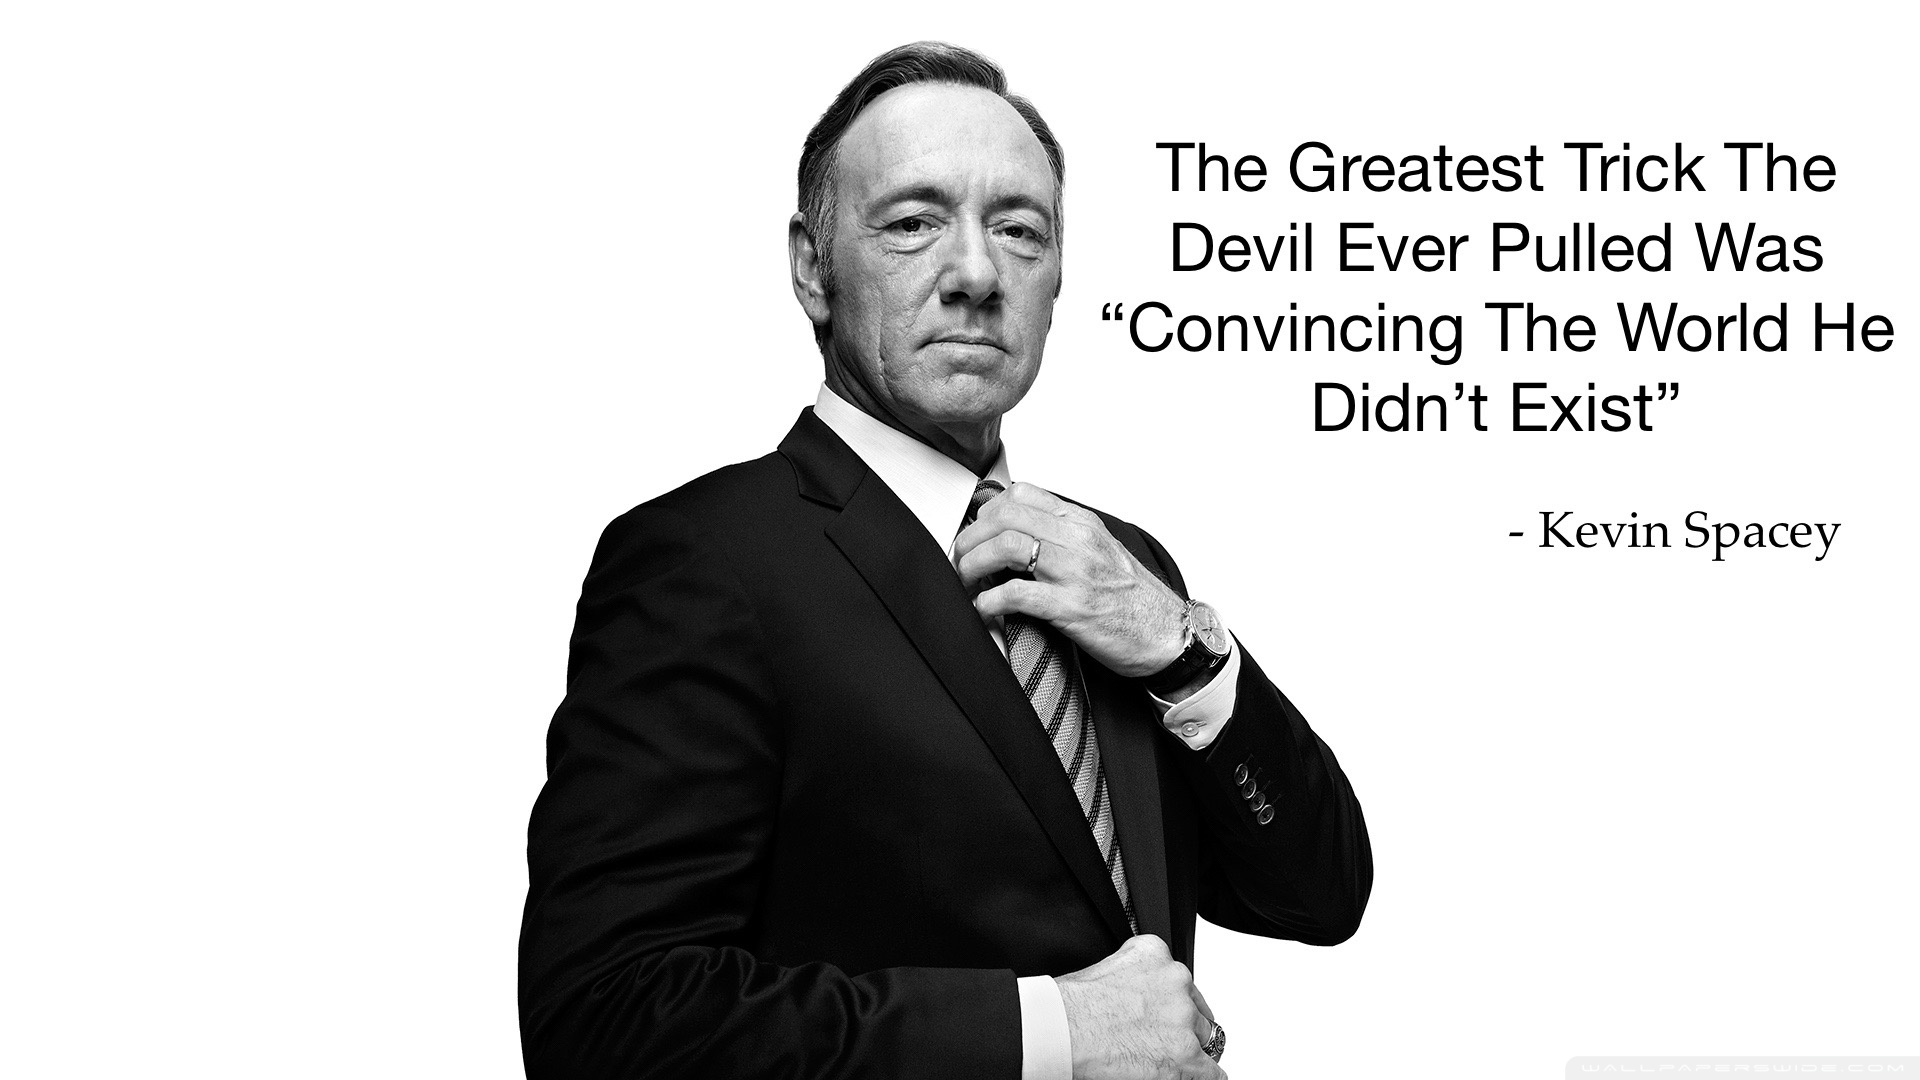 1920x1080 - Kevin Spacey Wallpapers 11